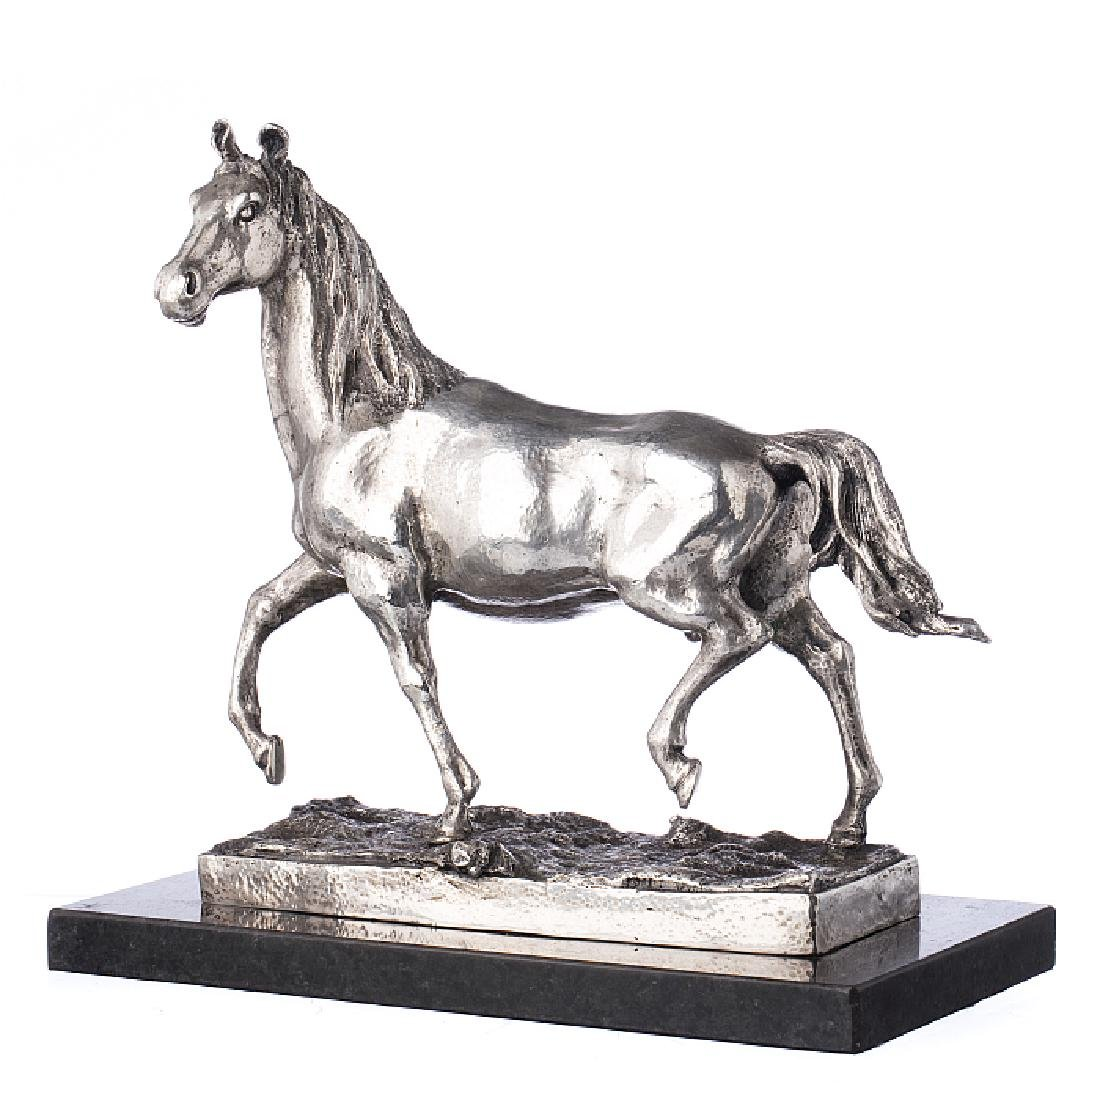 Sculpture of a horse in silver